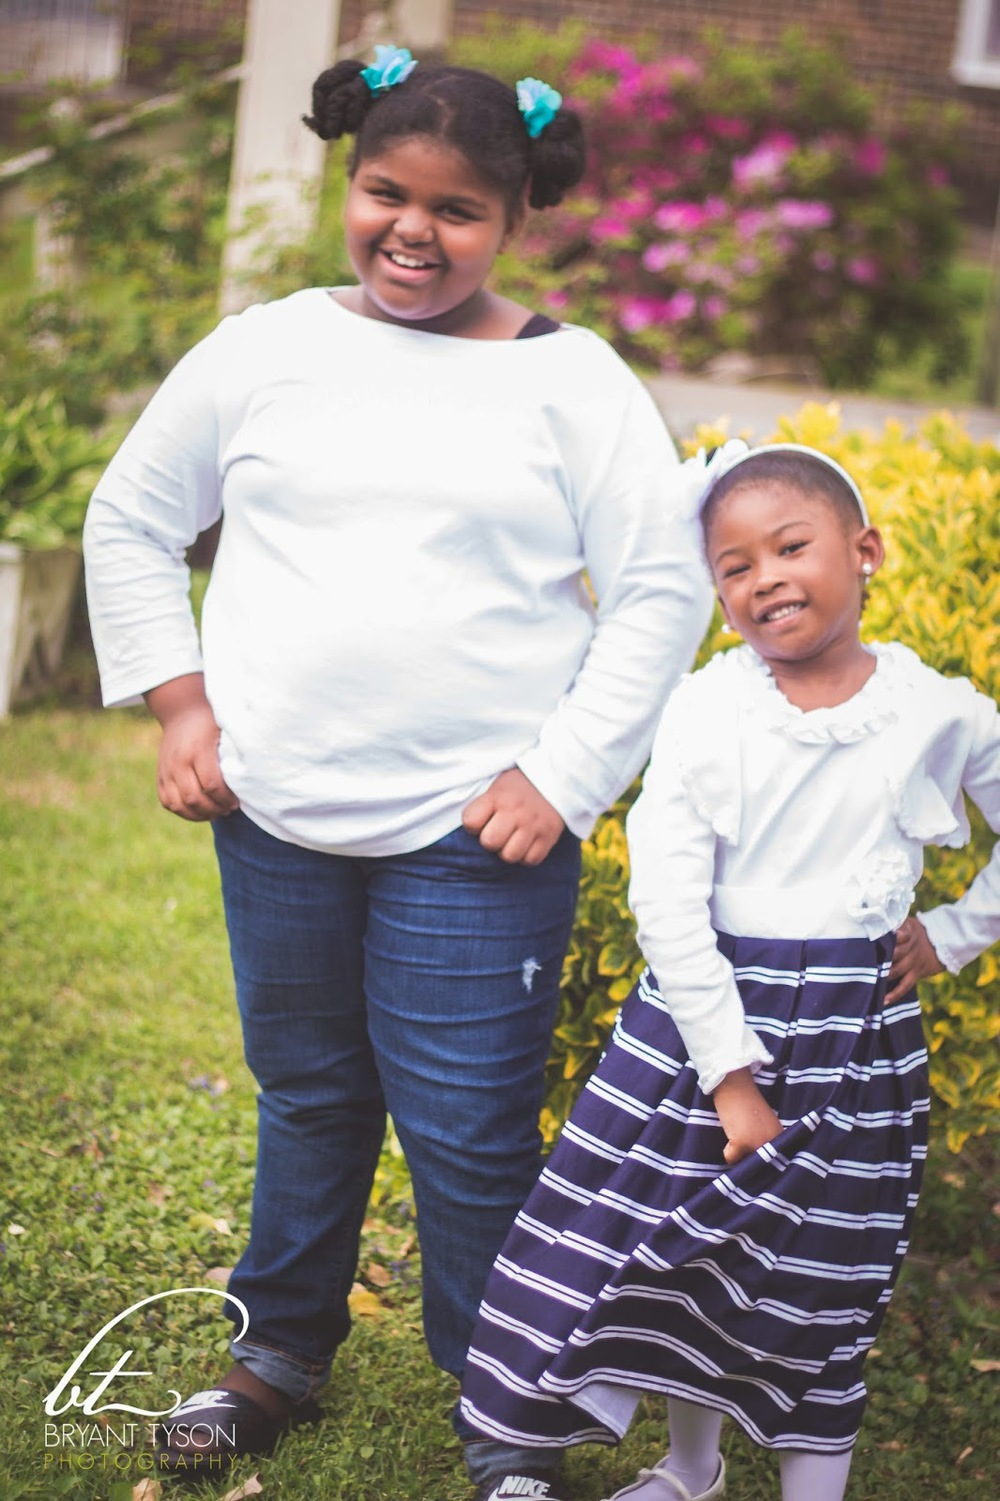 bryant tyson photography greenville nc photographer family portraits easter 2014 8